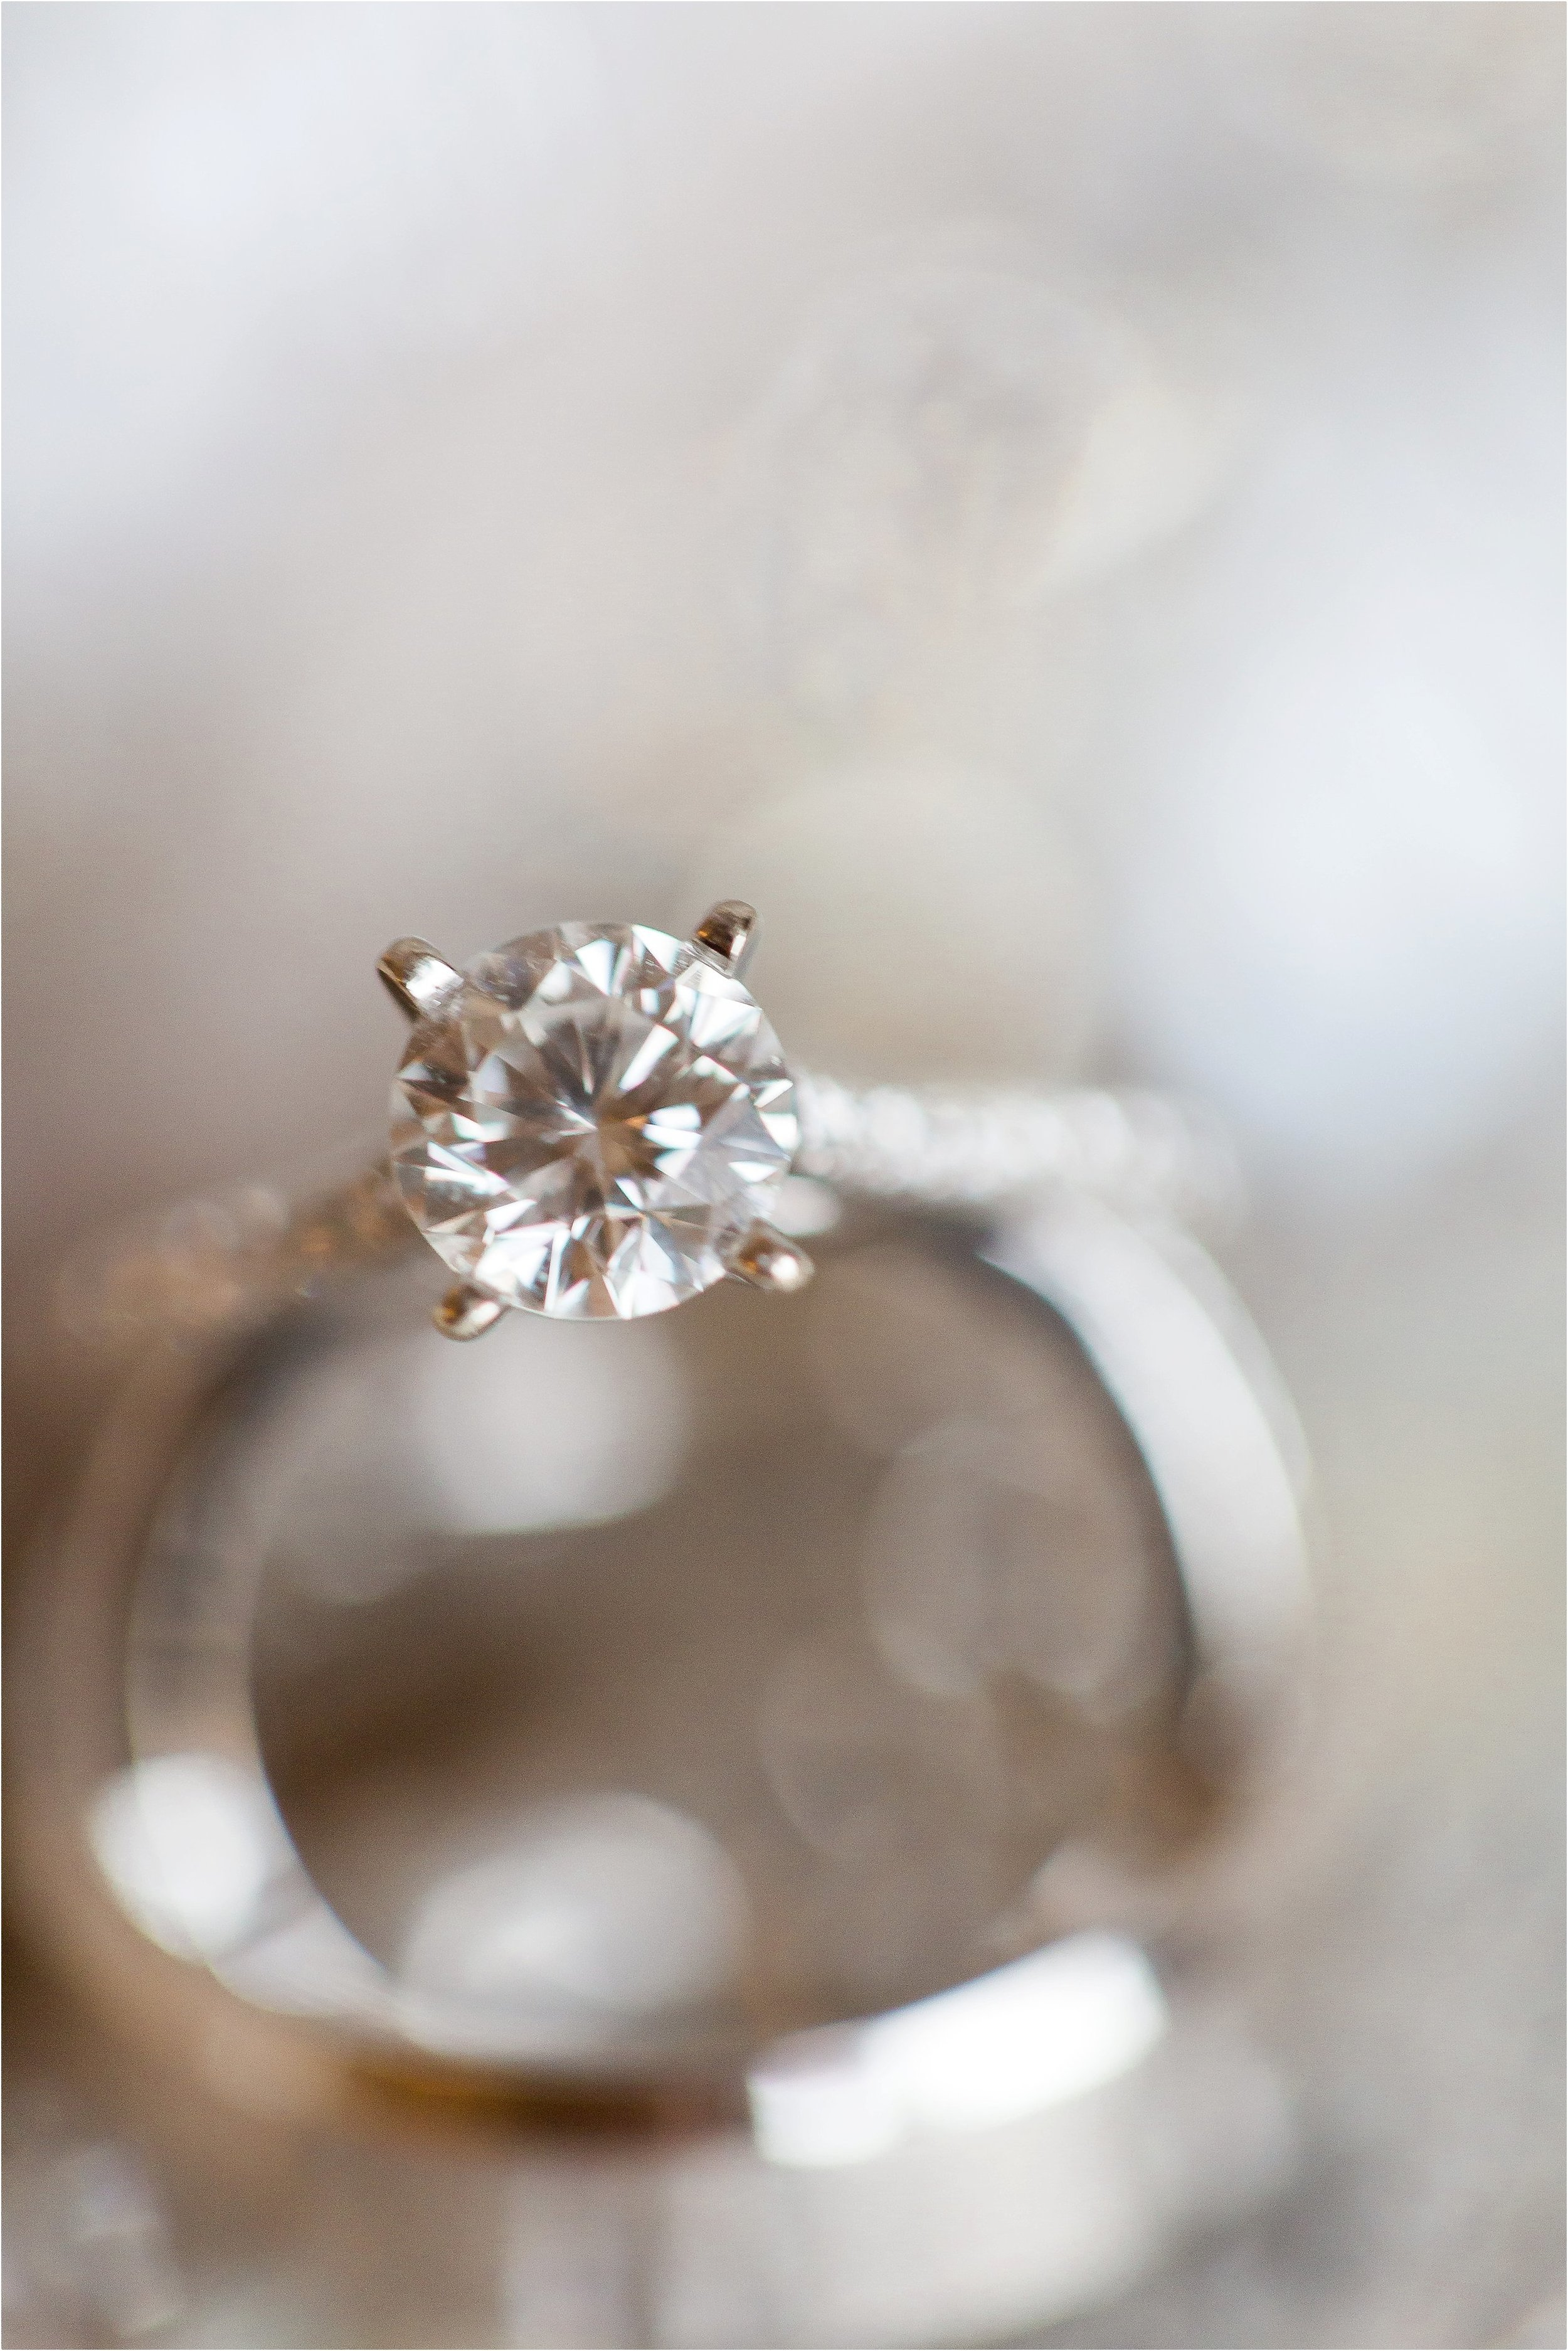 Solitaire diamond setting and platinum wedding bands at Wyndham Grand Resort at Bonnet Creek Wedding by PSJ Photography